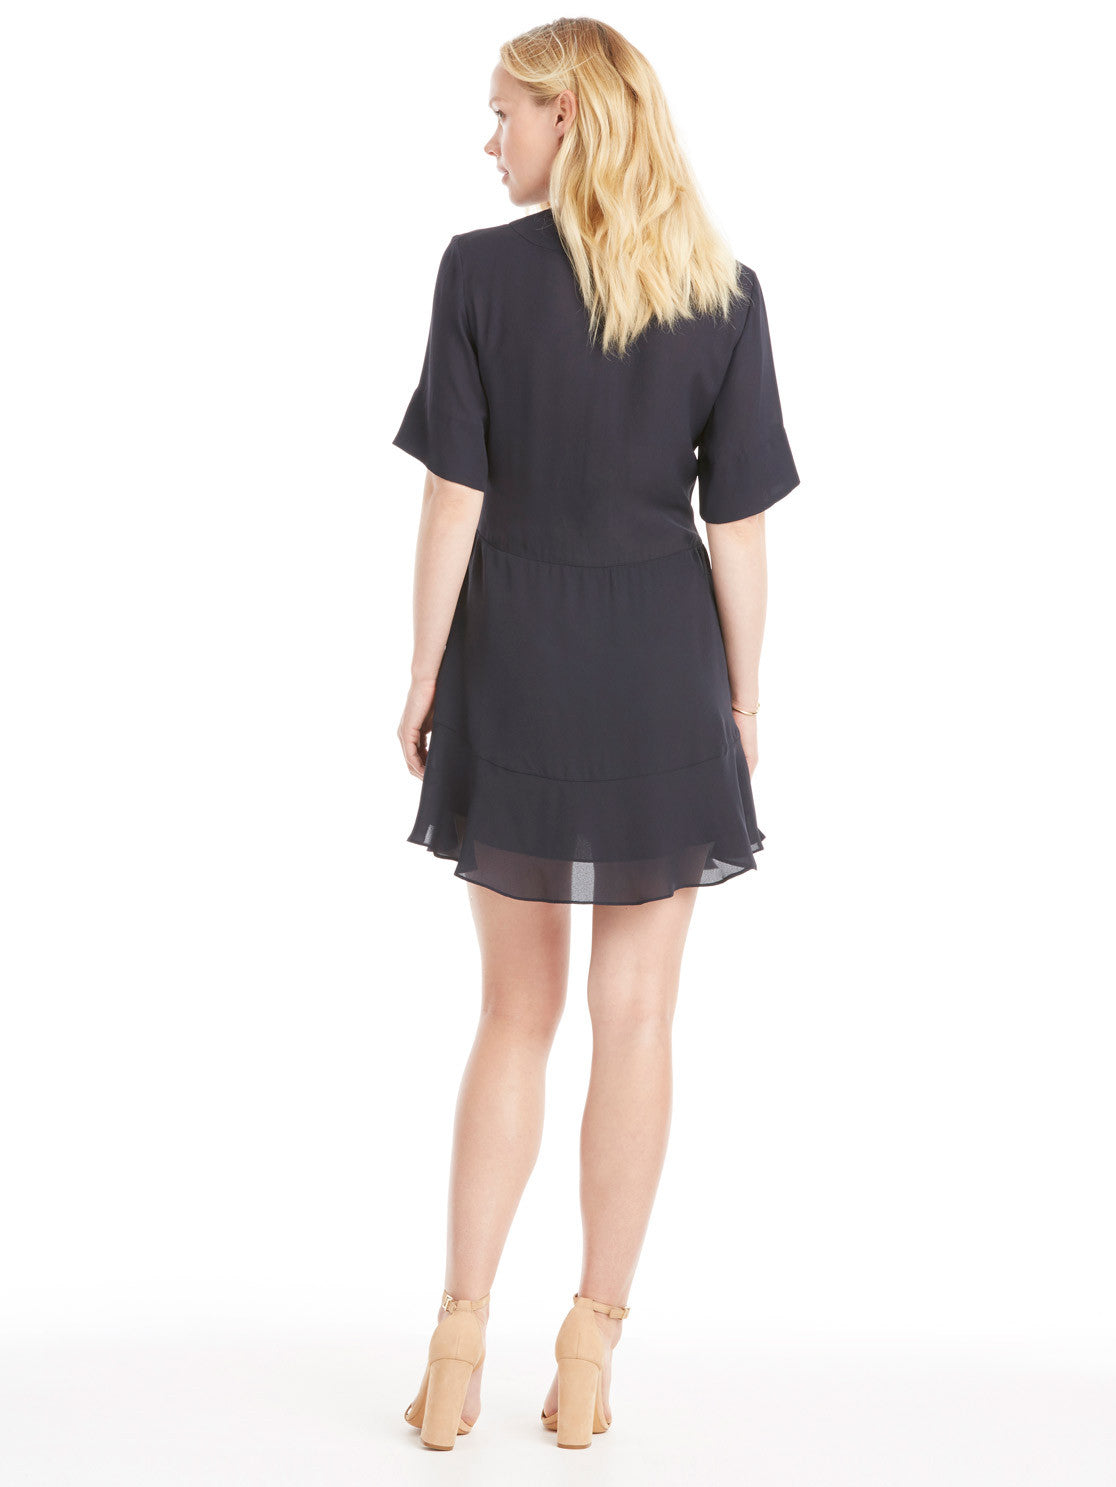 TILDEN | A.L.C. Delaney Dress